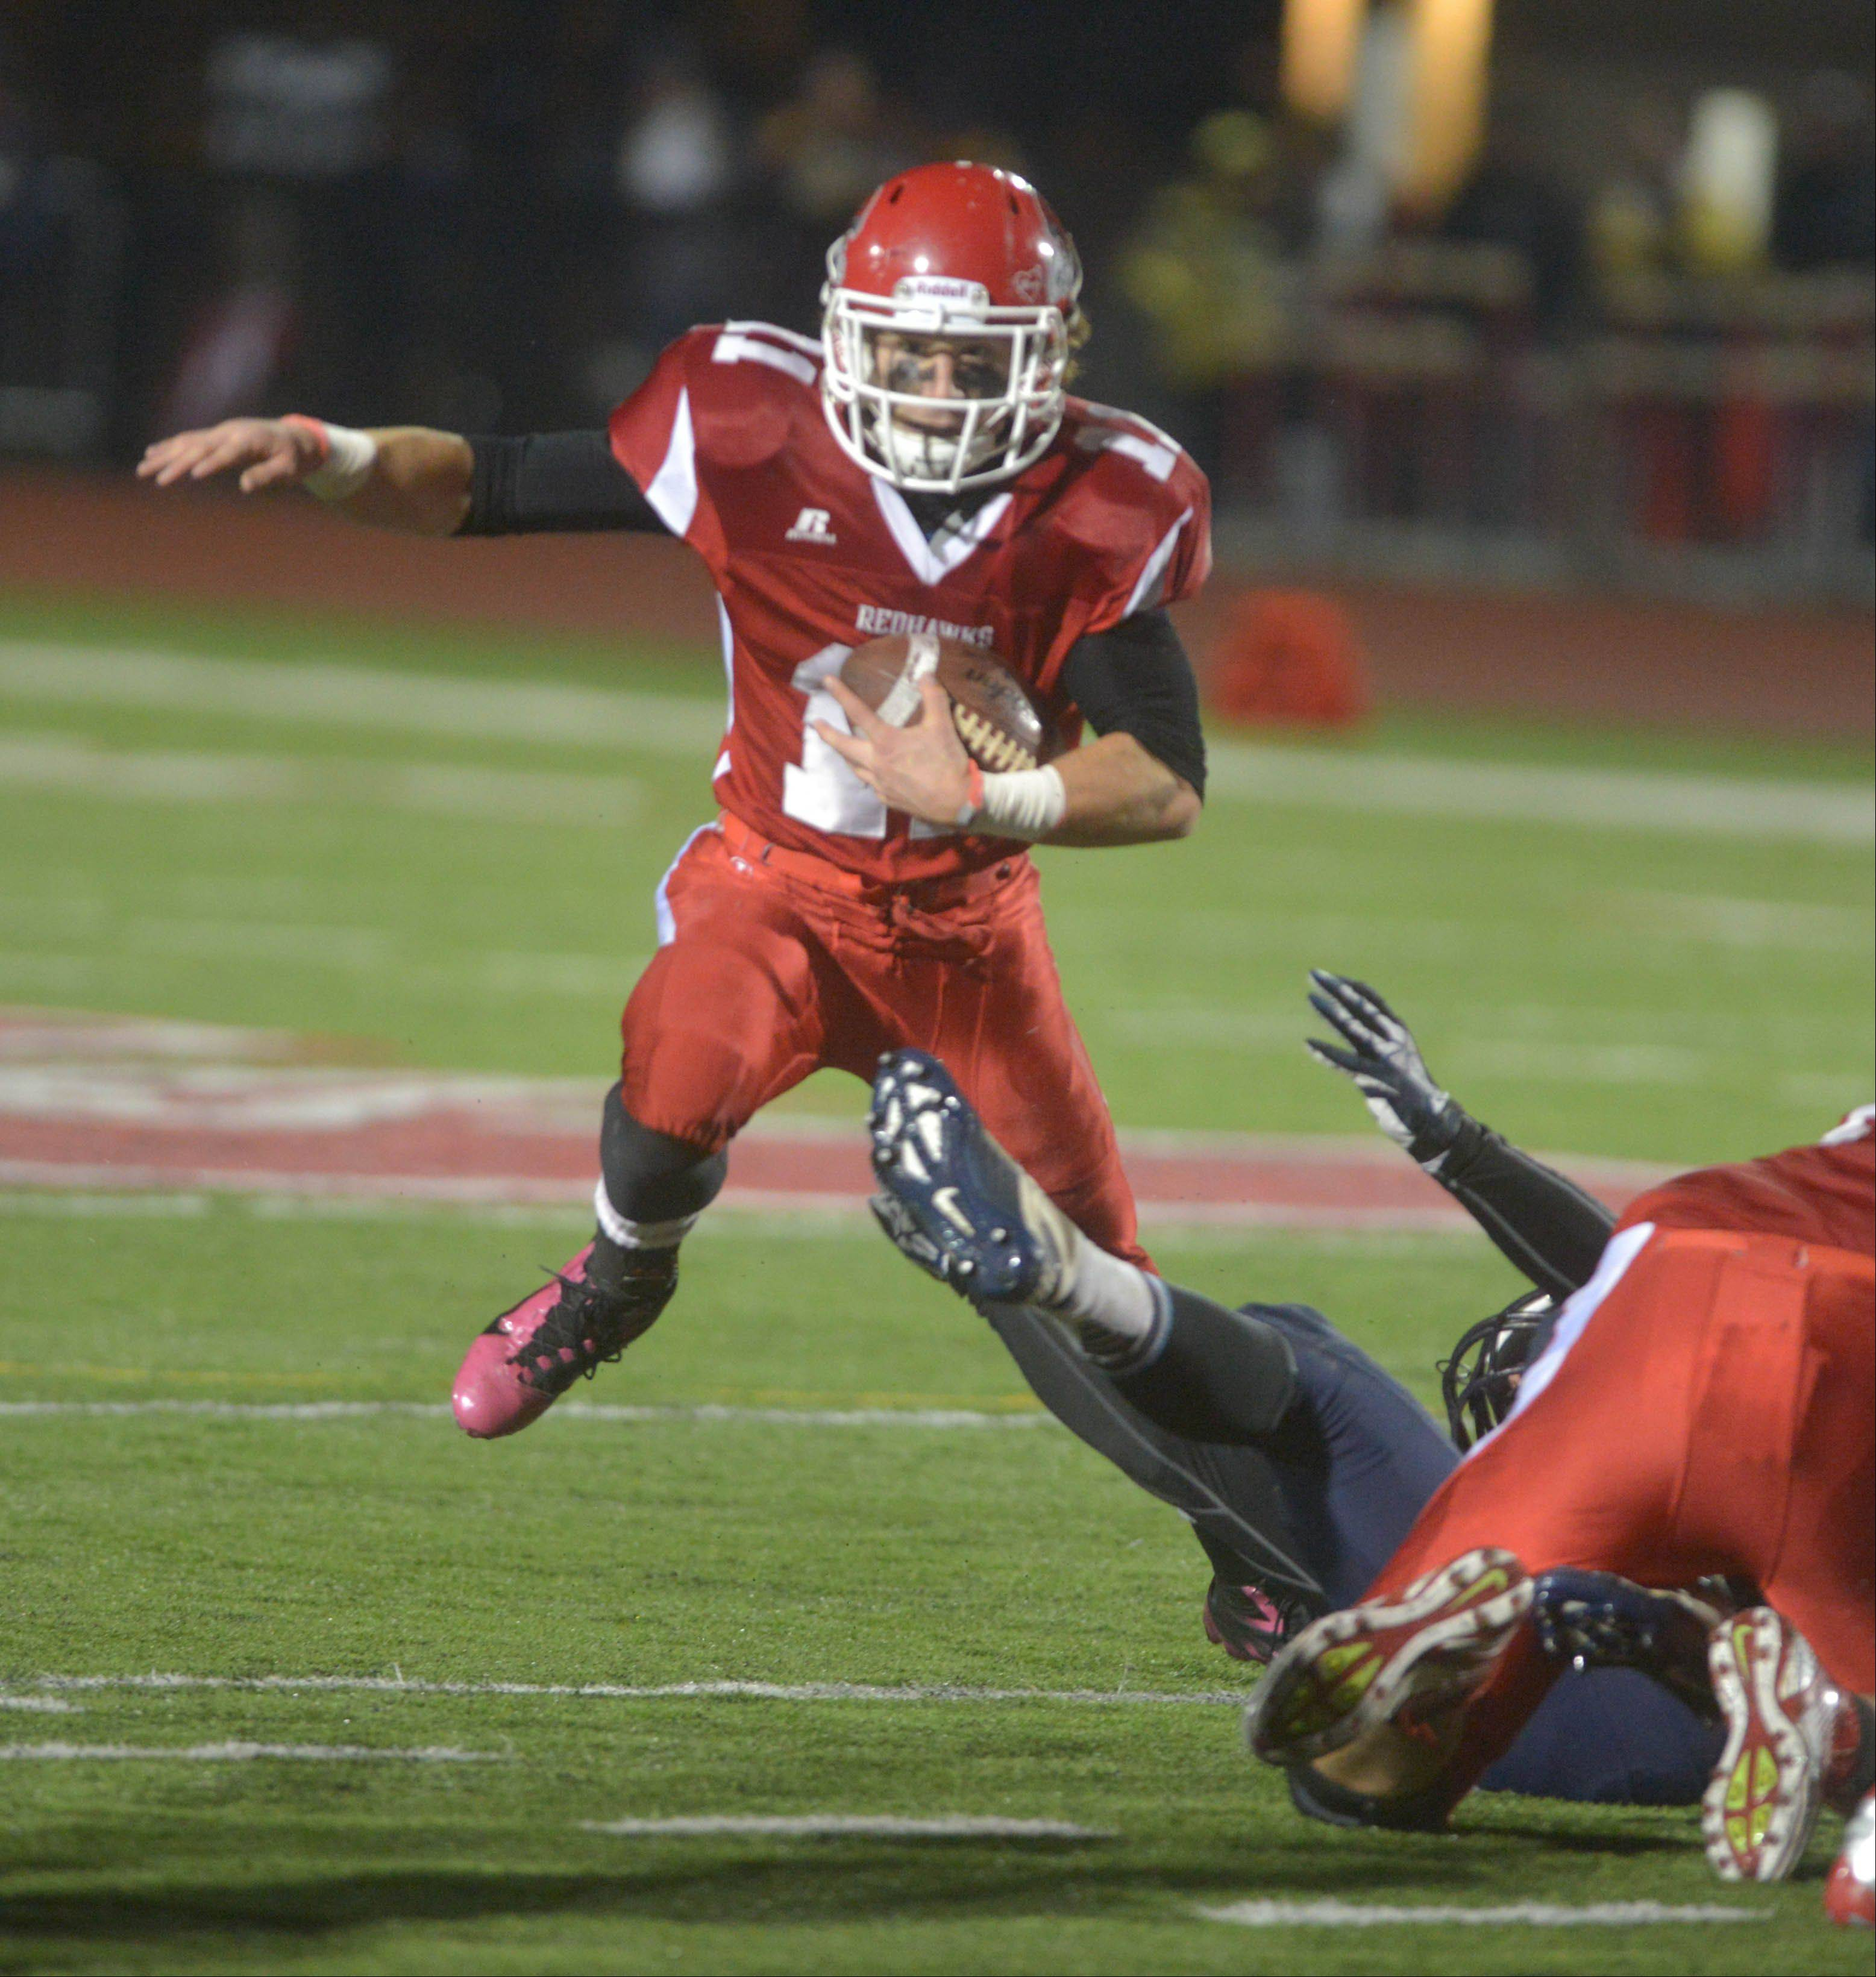 Ben Andreas and Naperville Central meet Loyola at 7 p.m. Saturday in the Class 8A state championship game at NIU's Huskie Stadium in DeKalb.